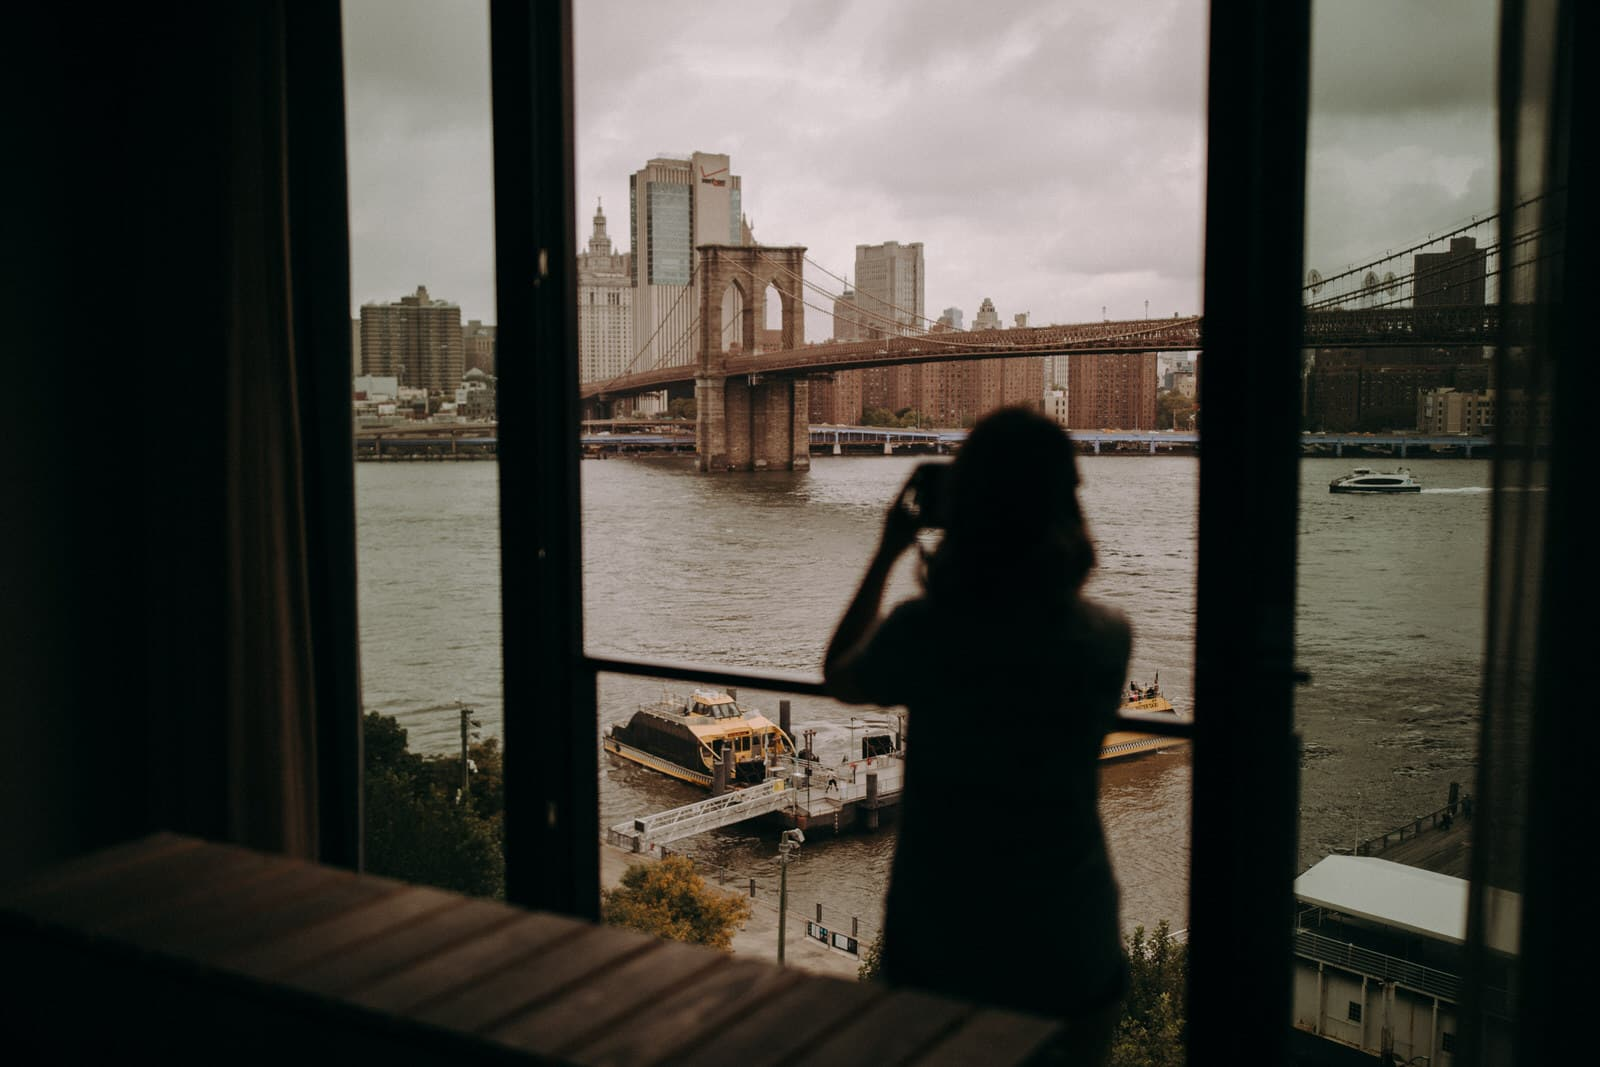 The bride is taking a picture of the Brooklyn Bridge.